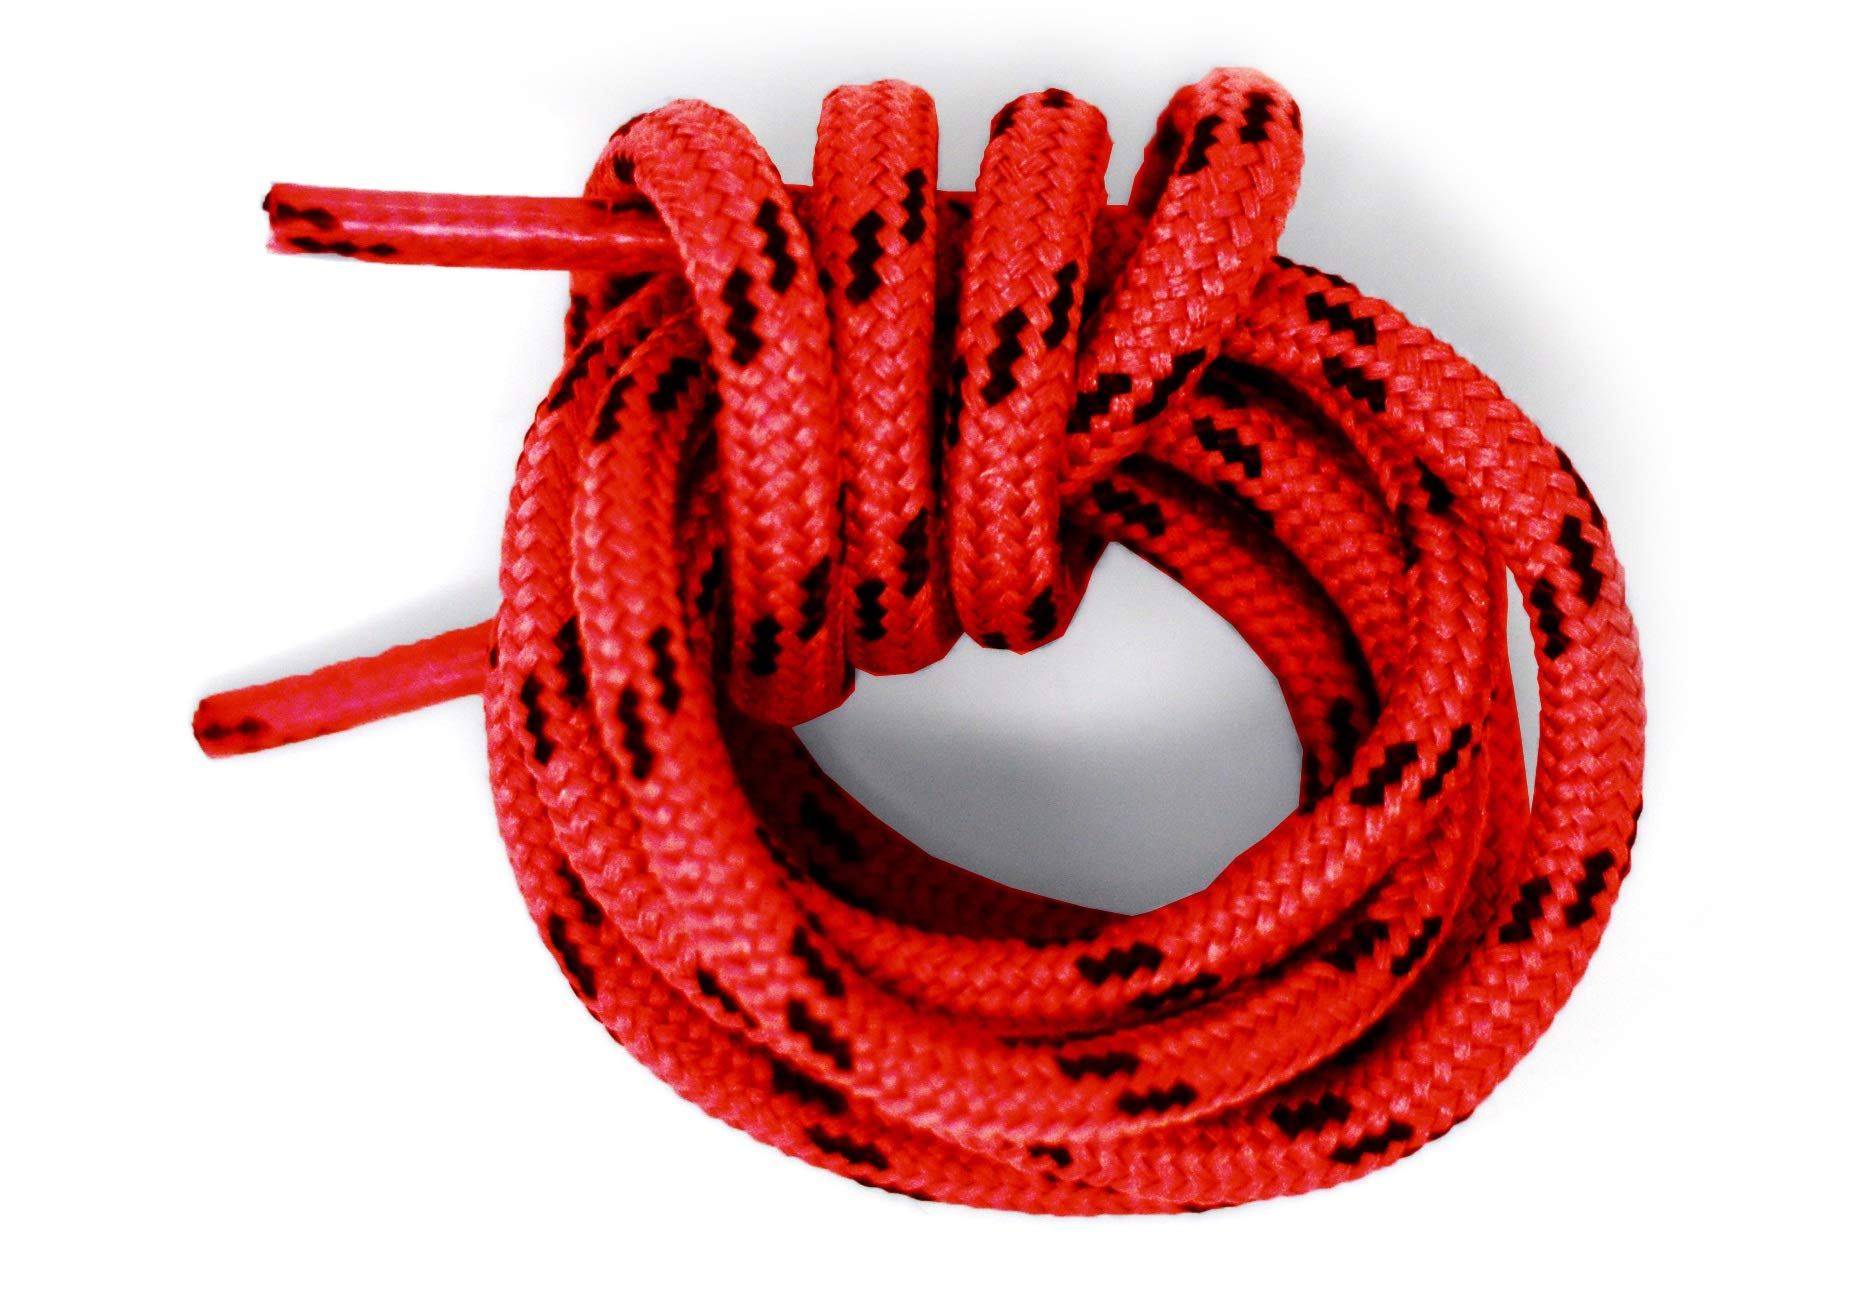 Mercury + Maia Honey Badger Boot Laces W/Kevlar - USA Made Shoelaces (Red and Black) (60 inches 2 Pair Pack)